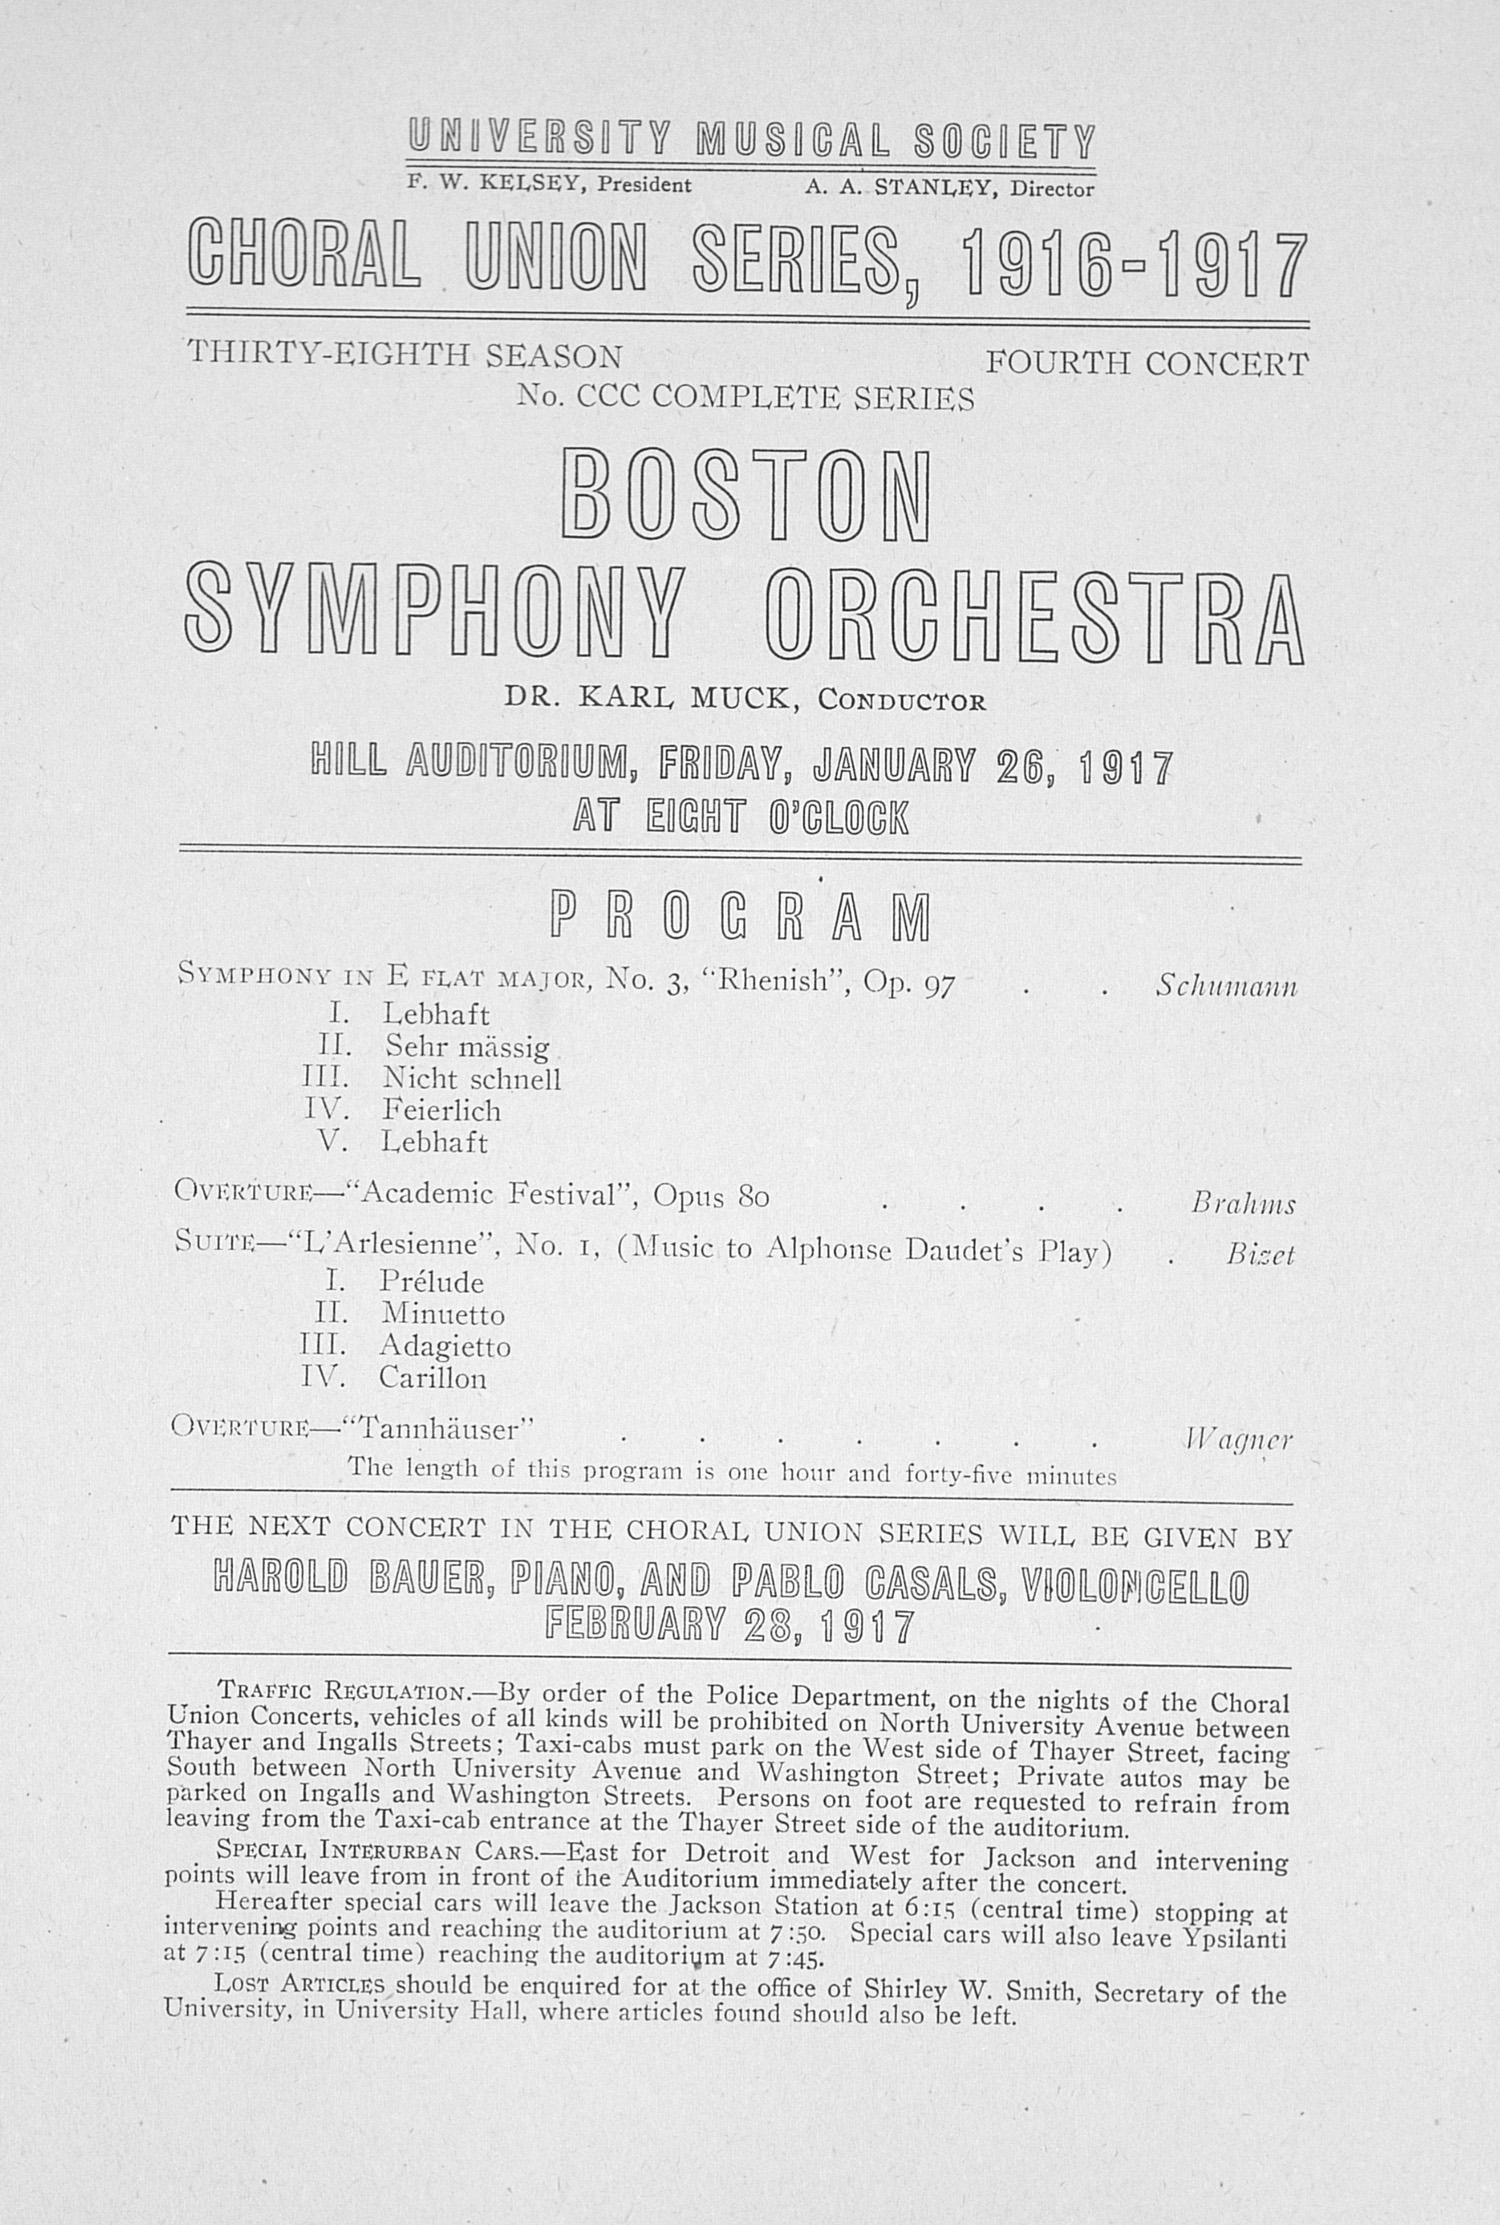 UMS Concert Program, January 26, 1917: Choral Union Series -- Boston Symphony Orchestra image